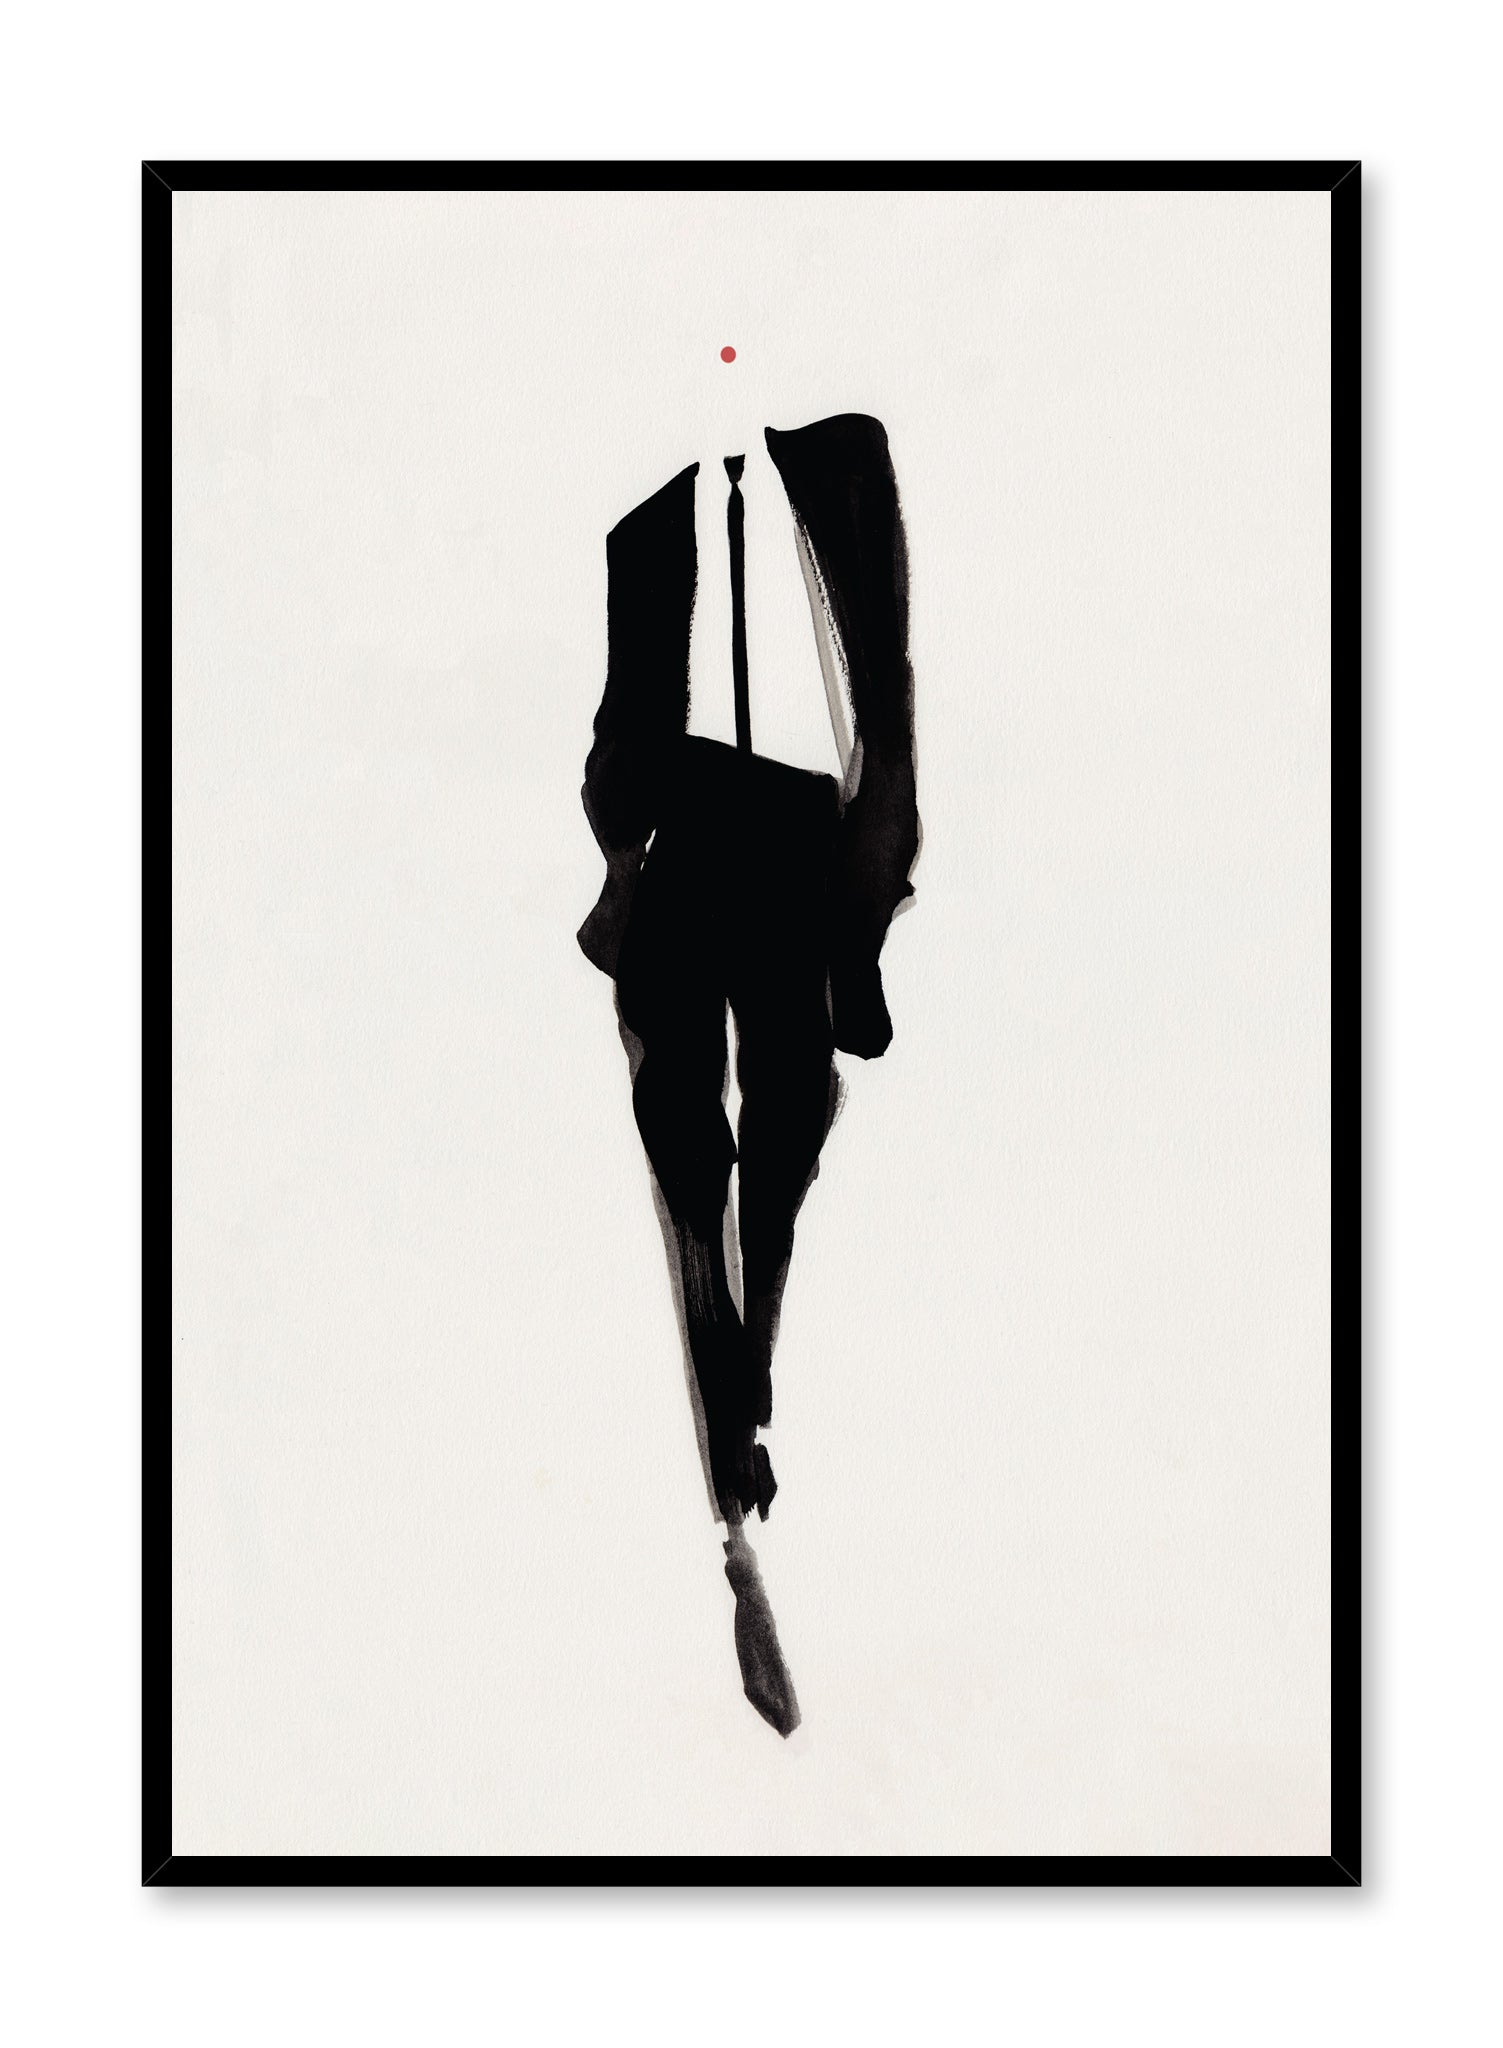 'Celine' is a fashion illustration poster from the Amelie Hegart collaboration collection.